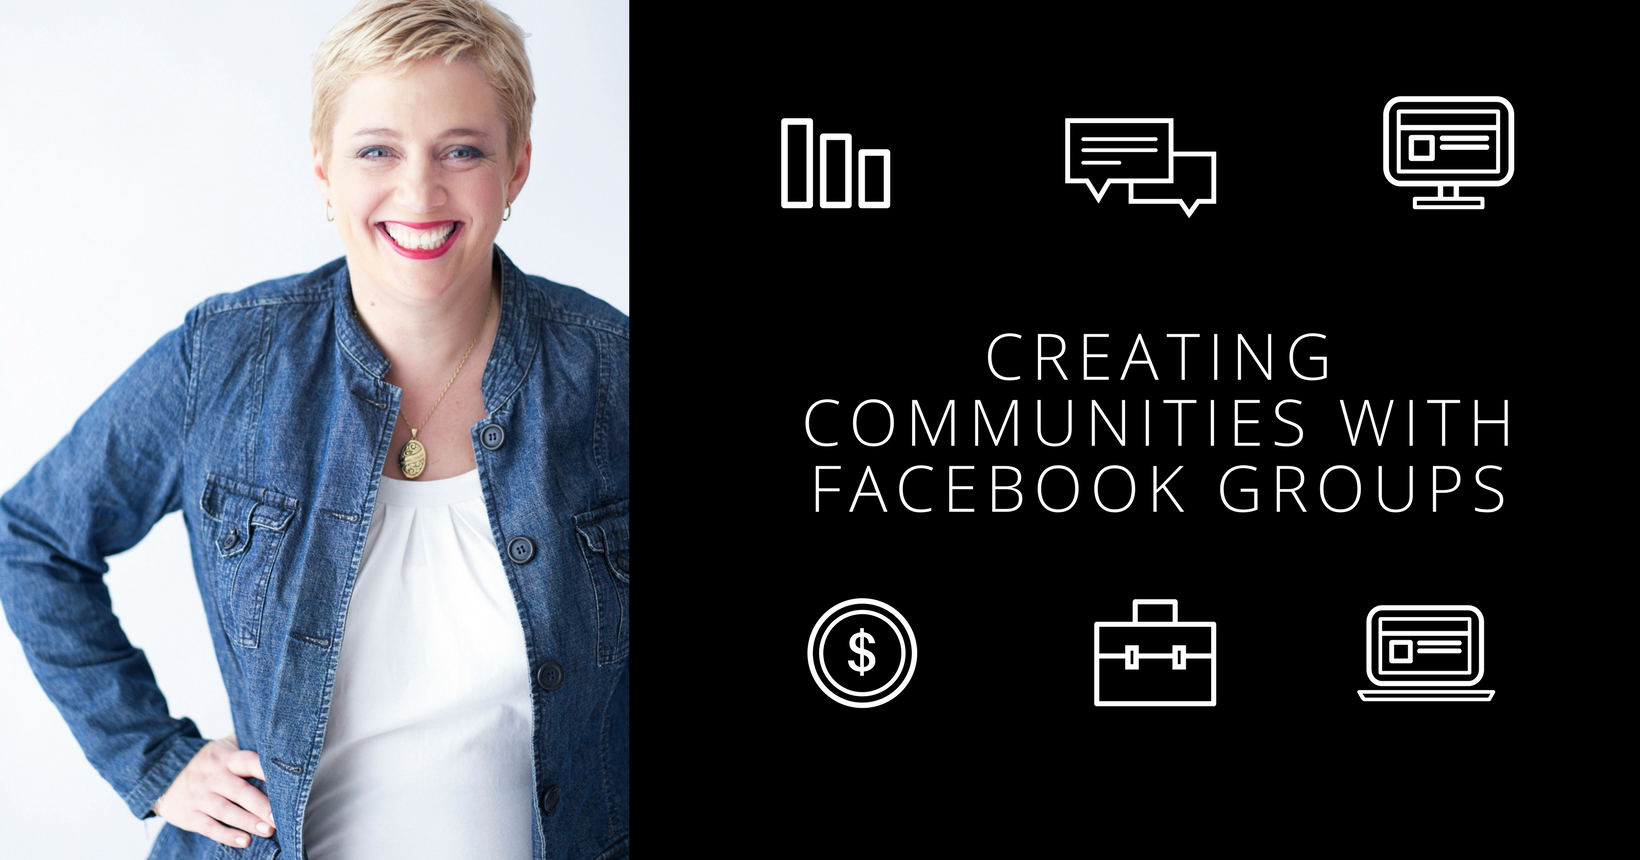 Creating Communities with Facebook Groups